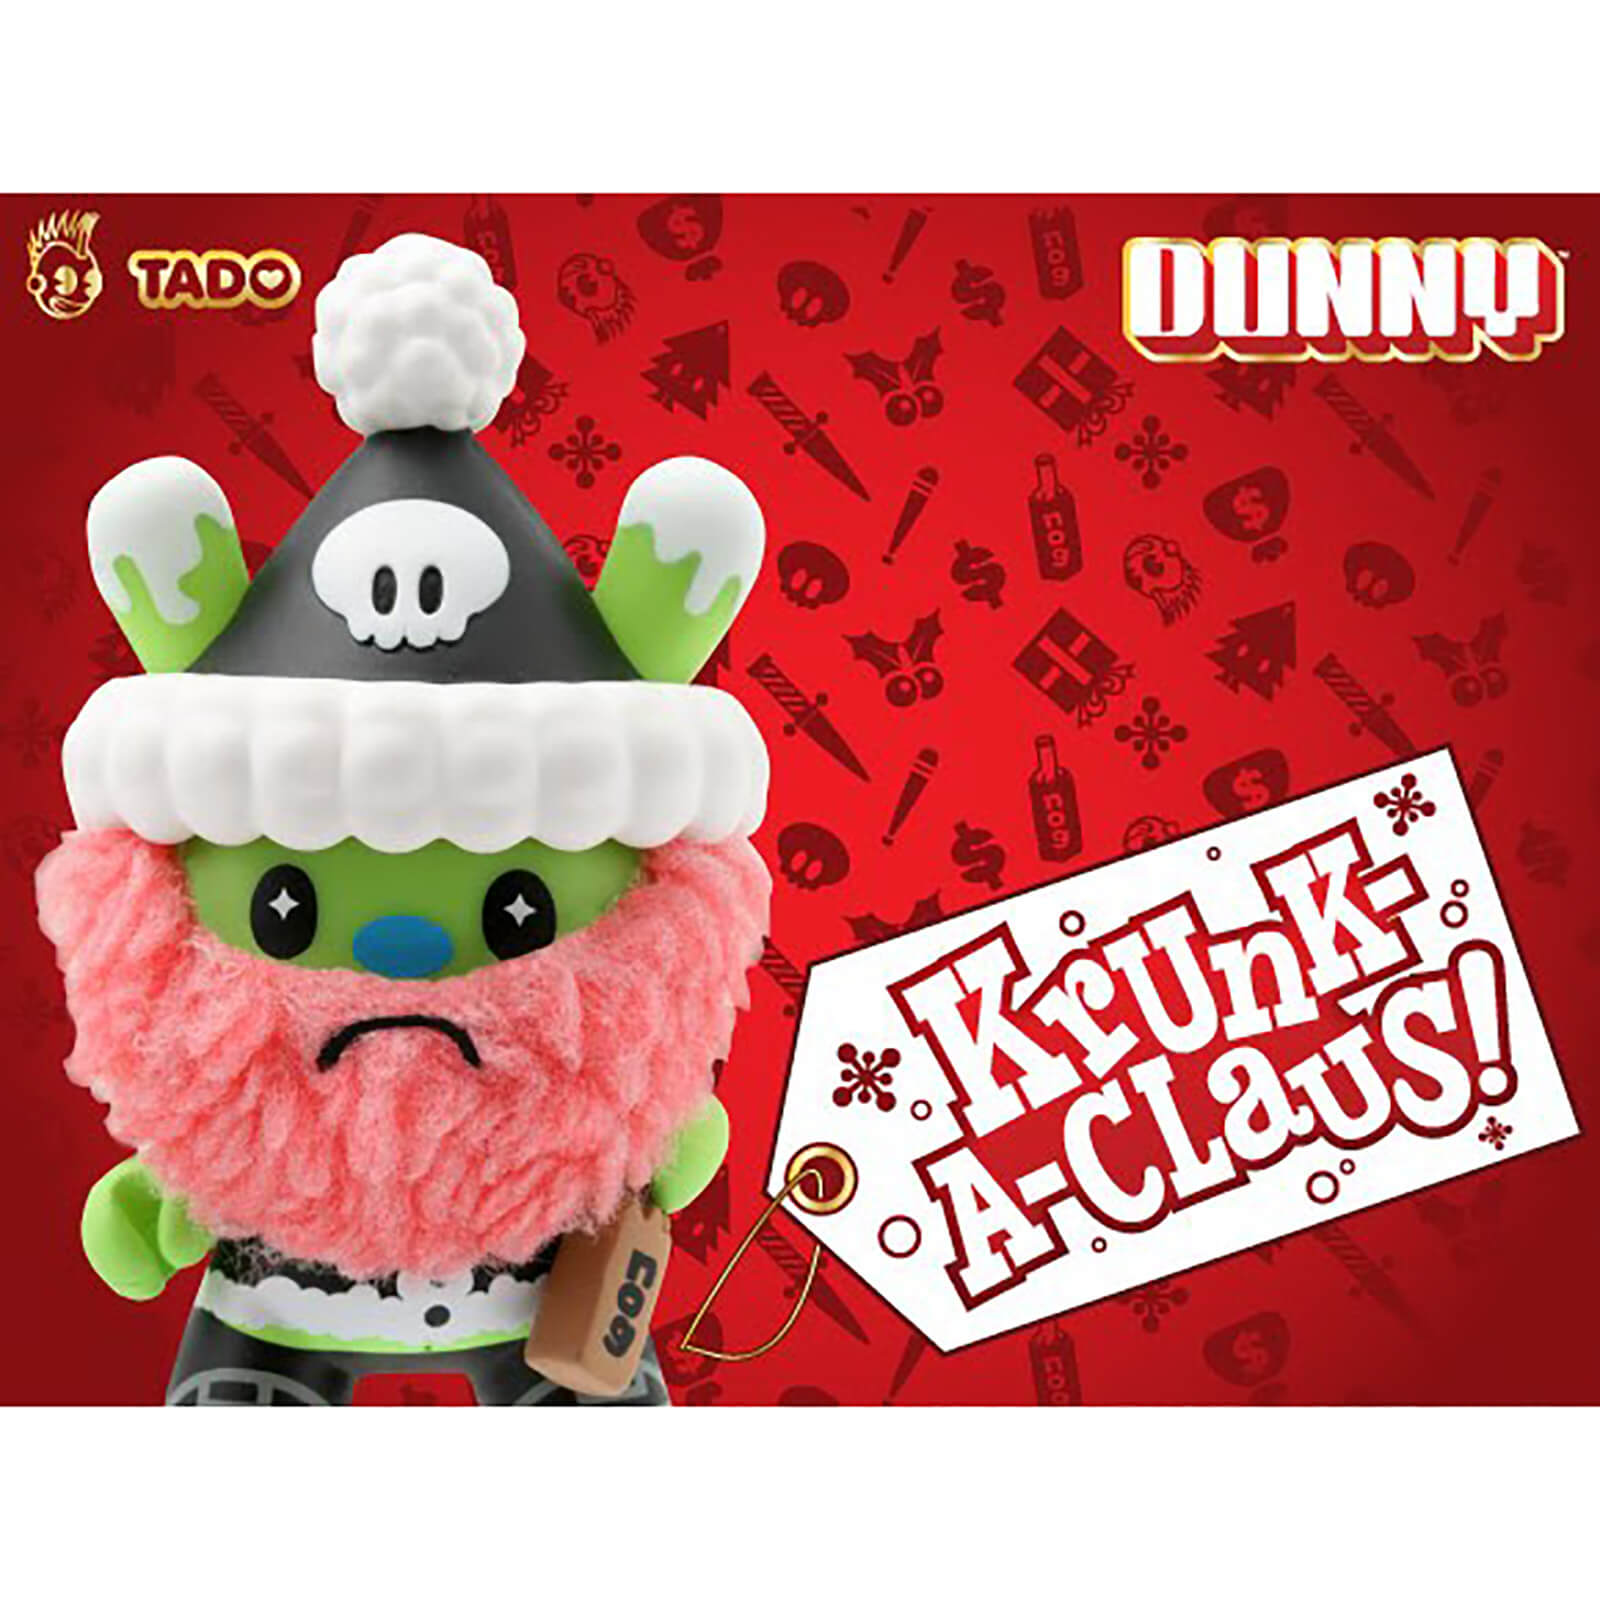 Image of Kidrobot Krunk-a-Claus DUNNY 3 Inch Vinyl